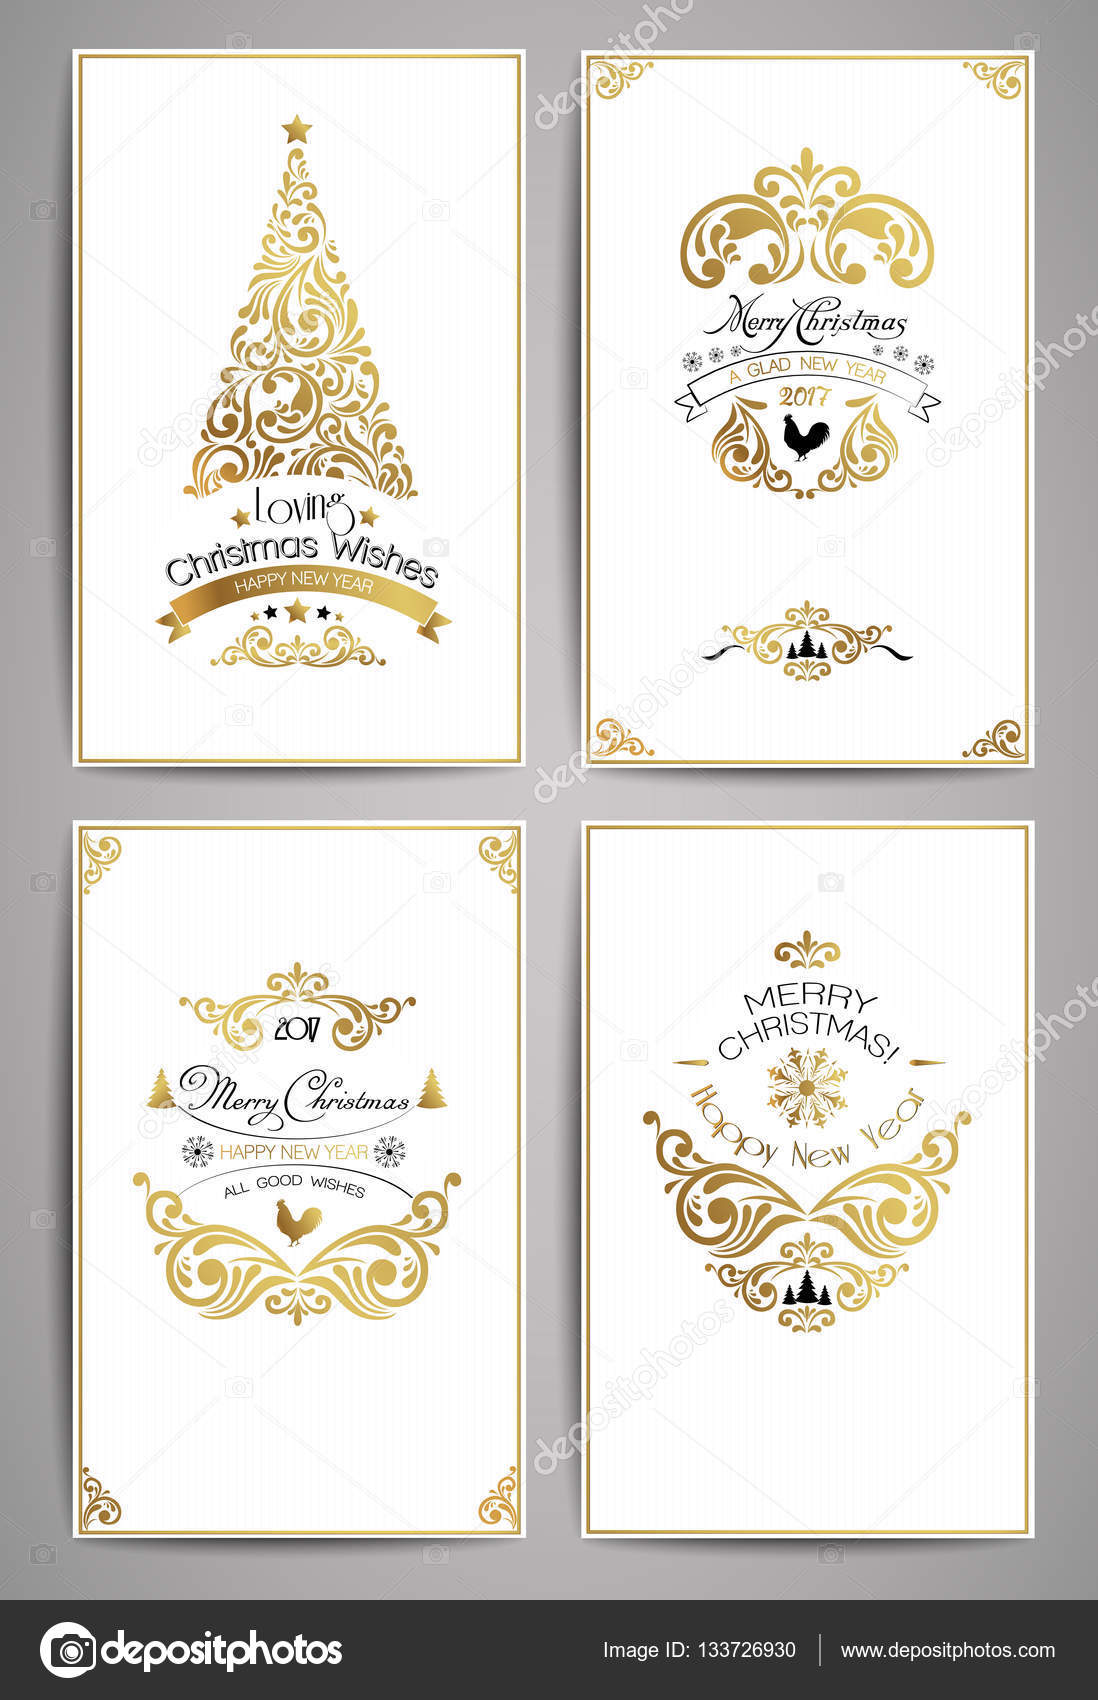 Ornate holidays greeting cards. Golden ornaments and typographic ...